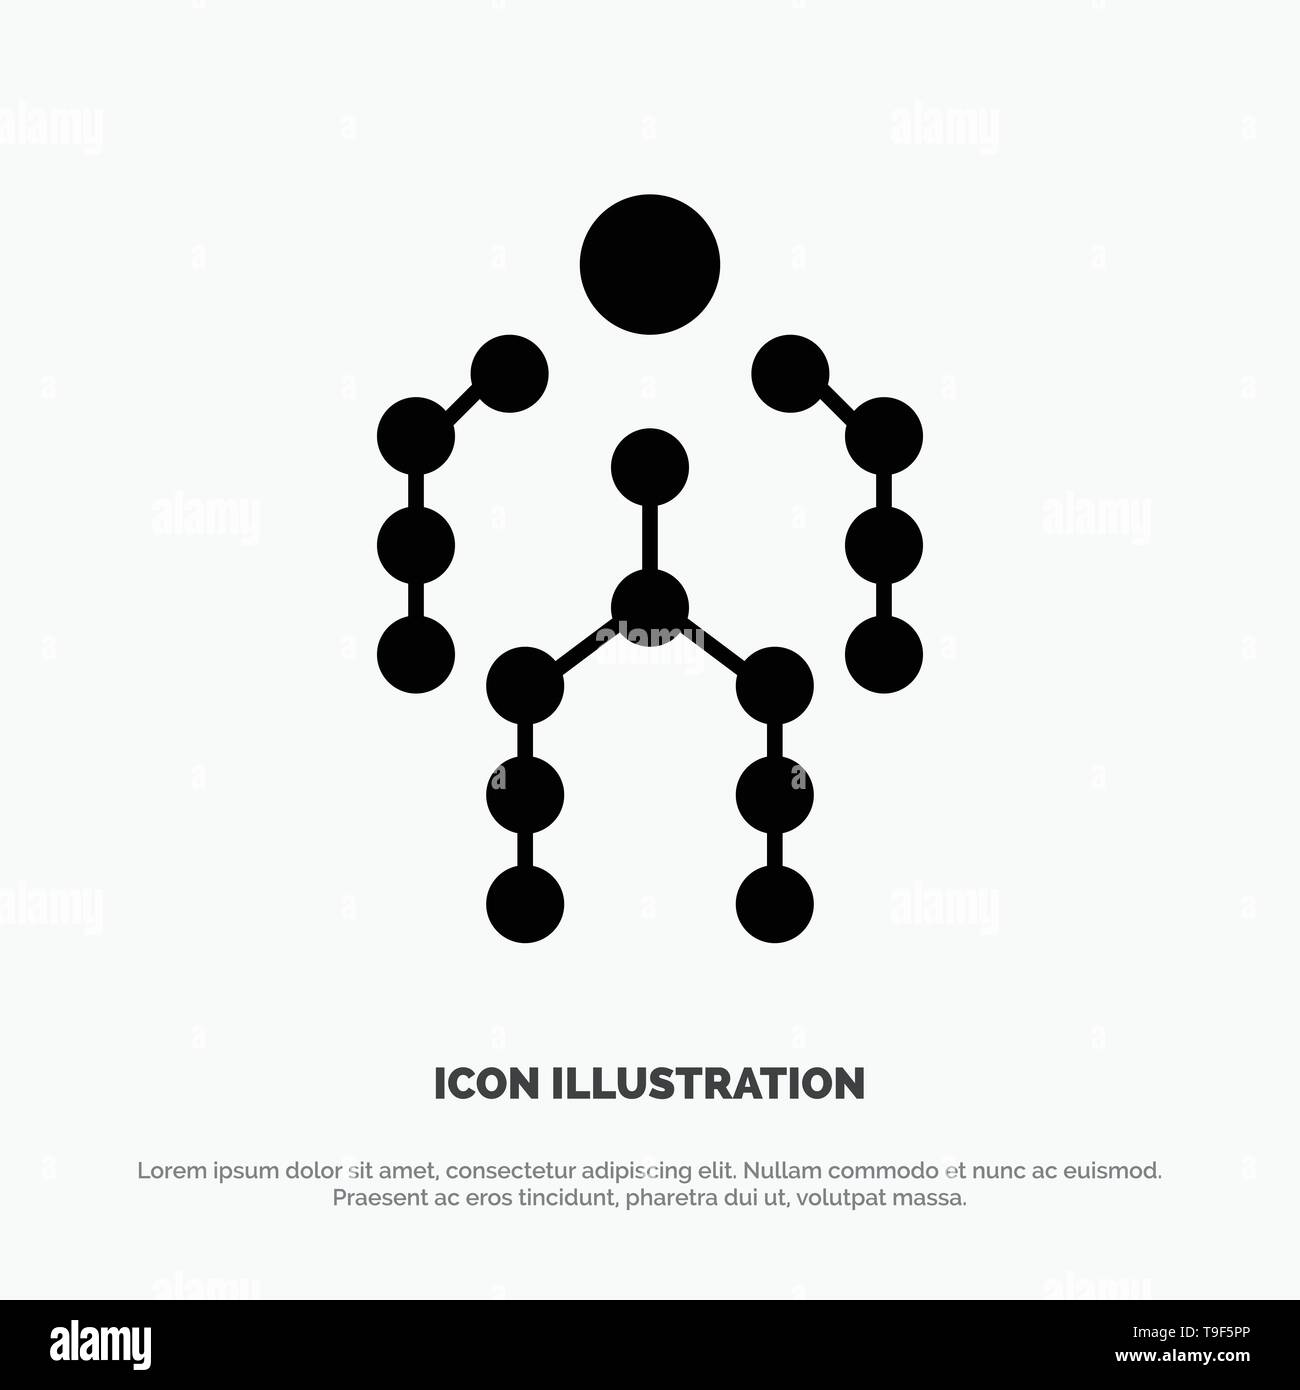 Action, Bones, Capture, Human, Motion solid Glyph Icon vector - Stock Image